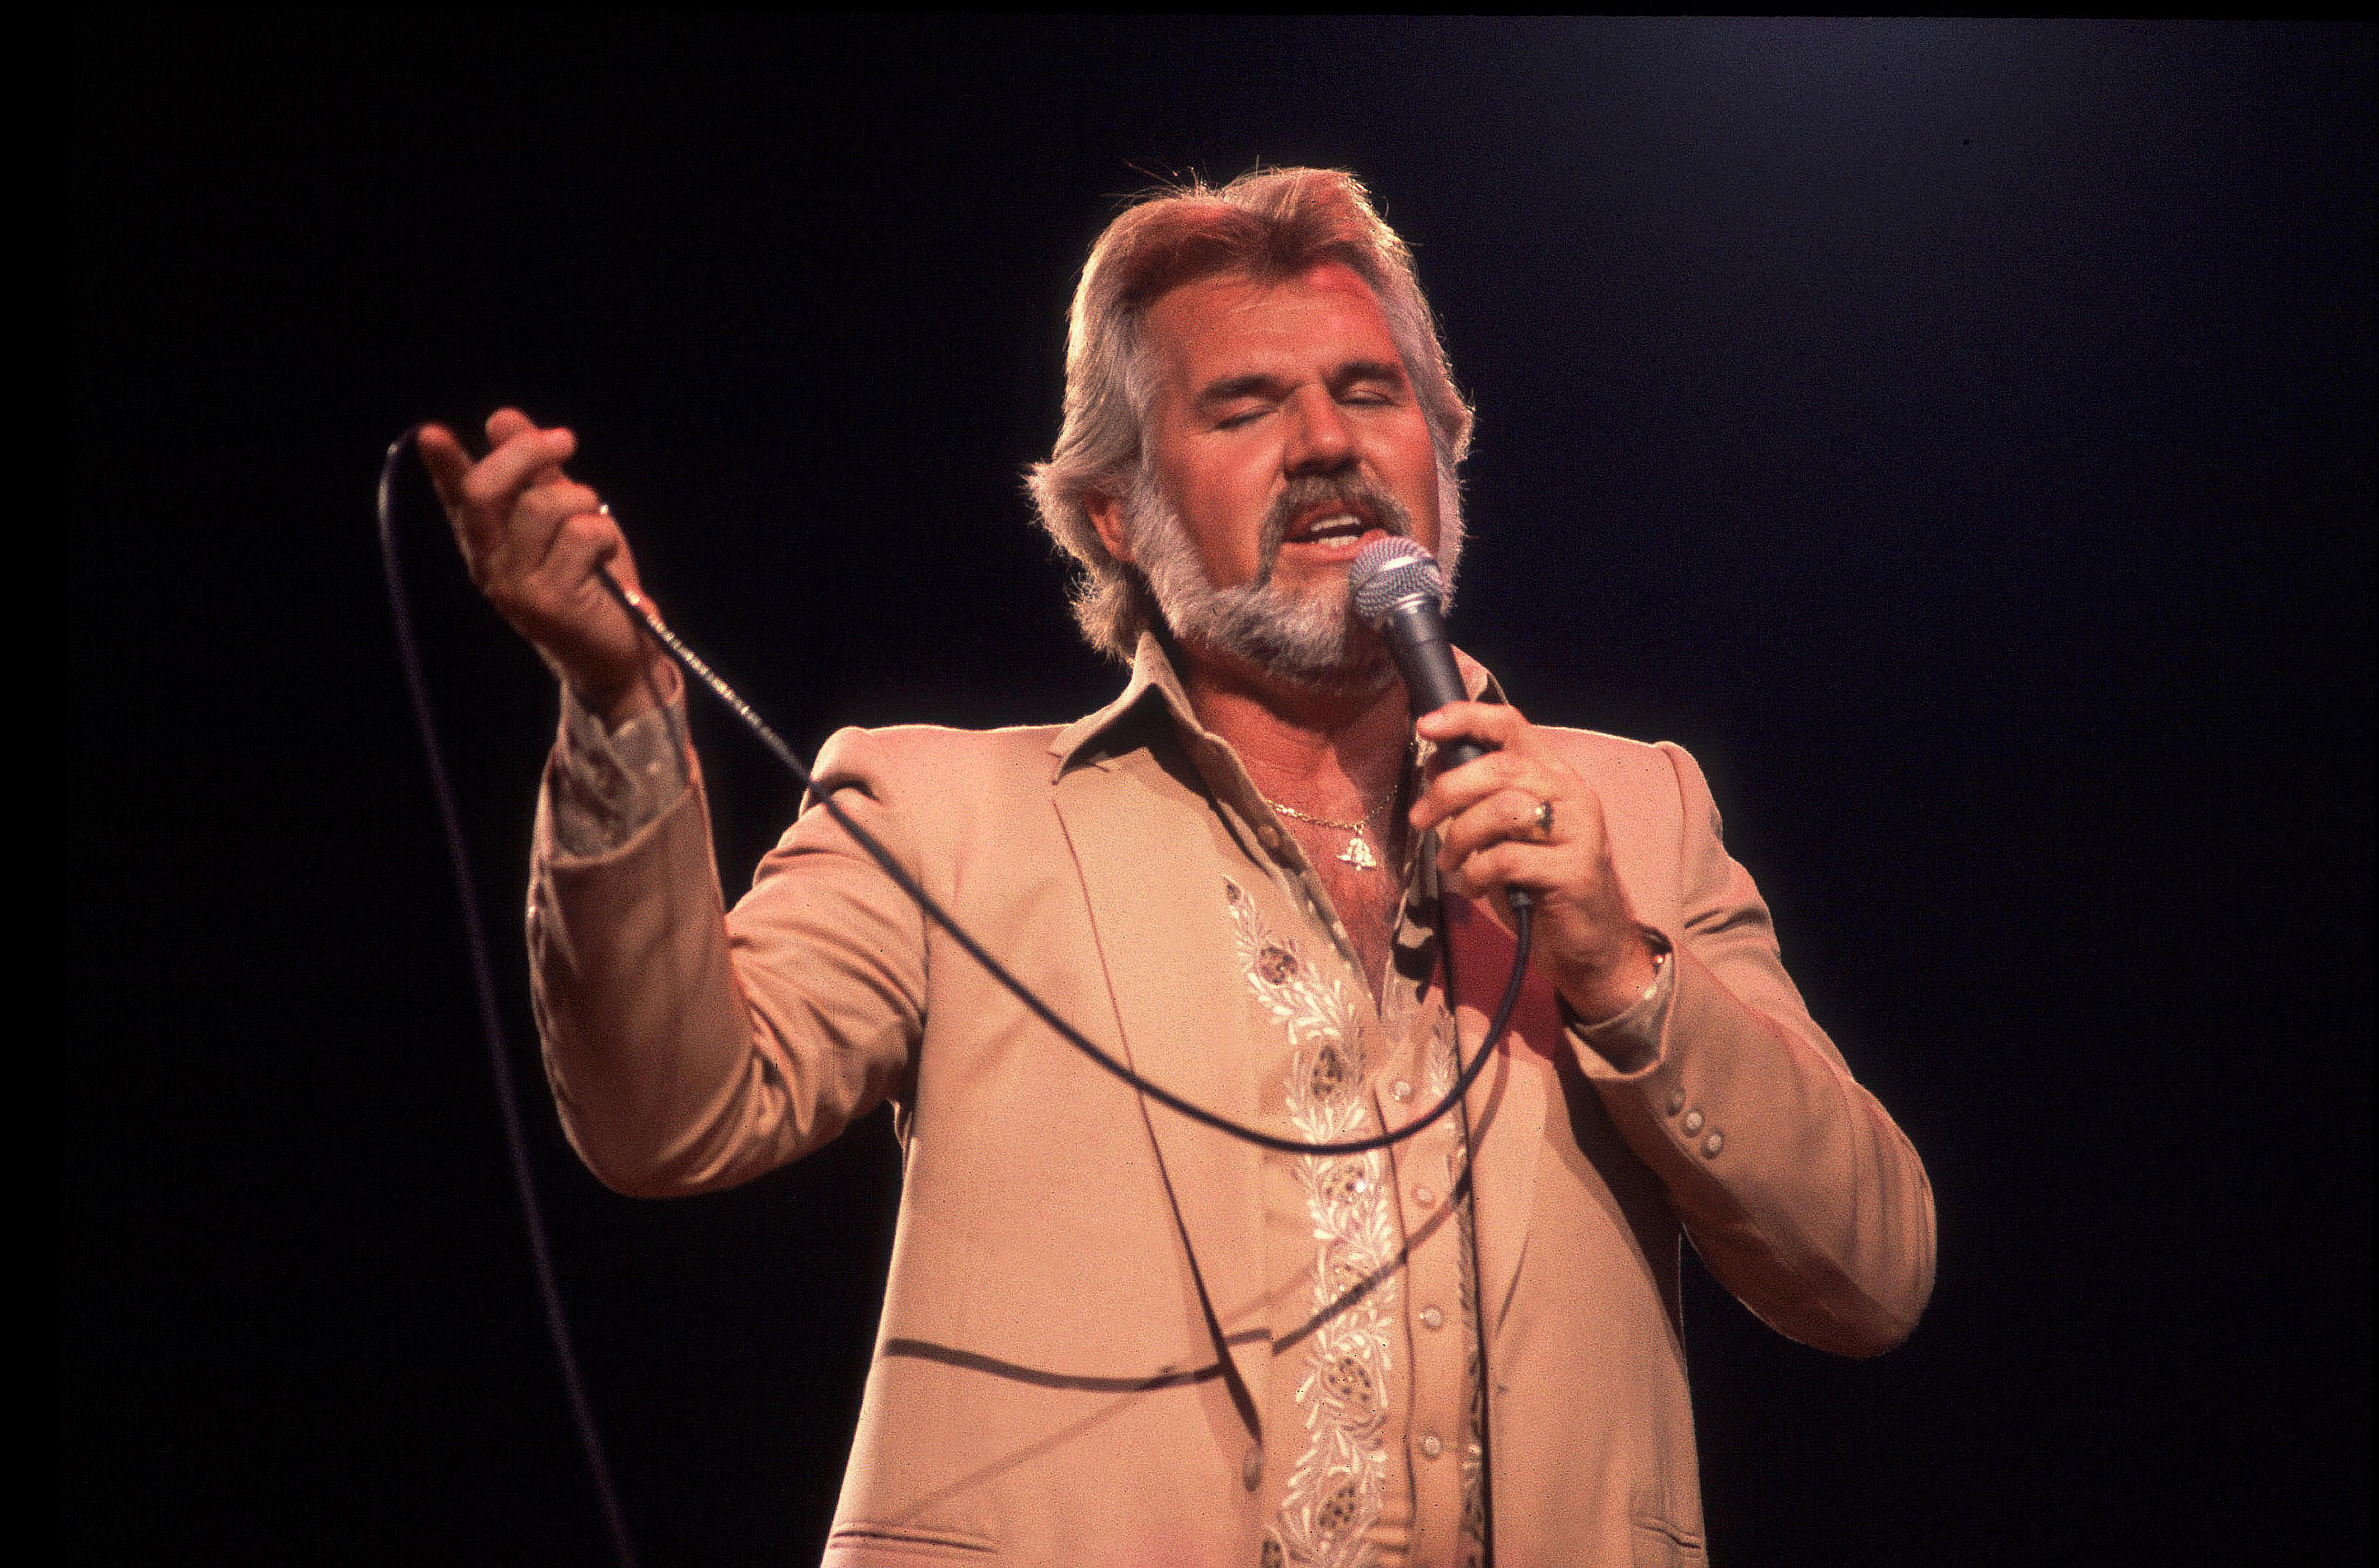 Kenny Rogers performs in Rosemont, Illinois on July 10, 1981.